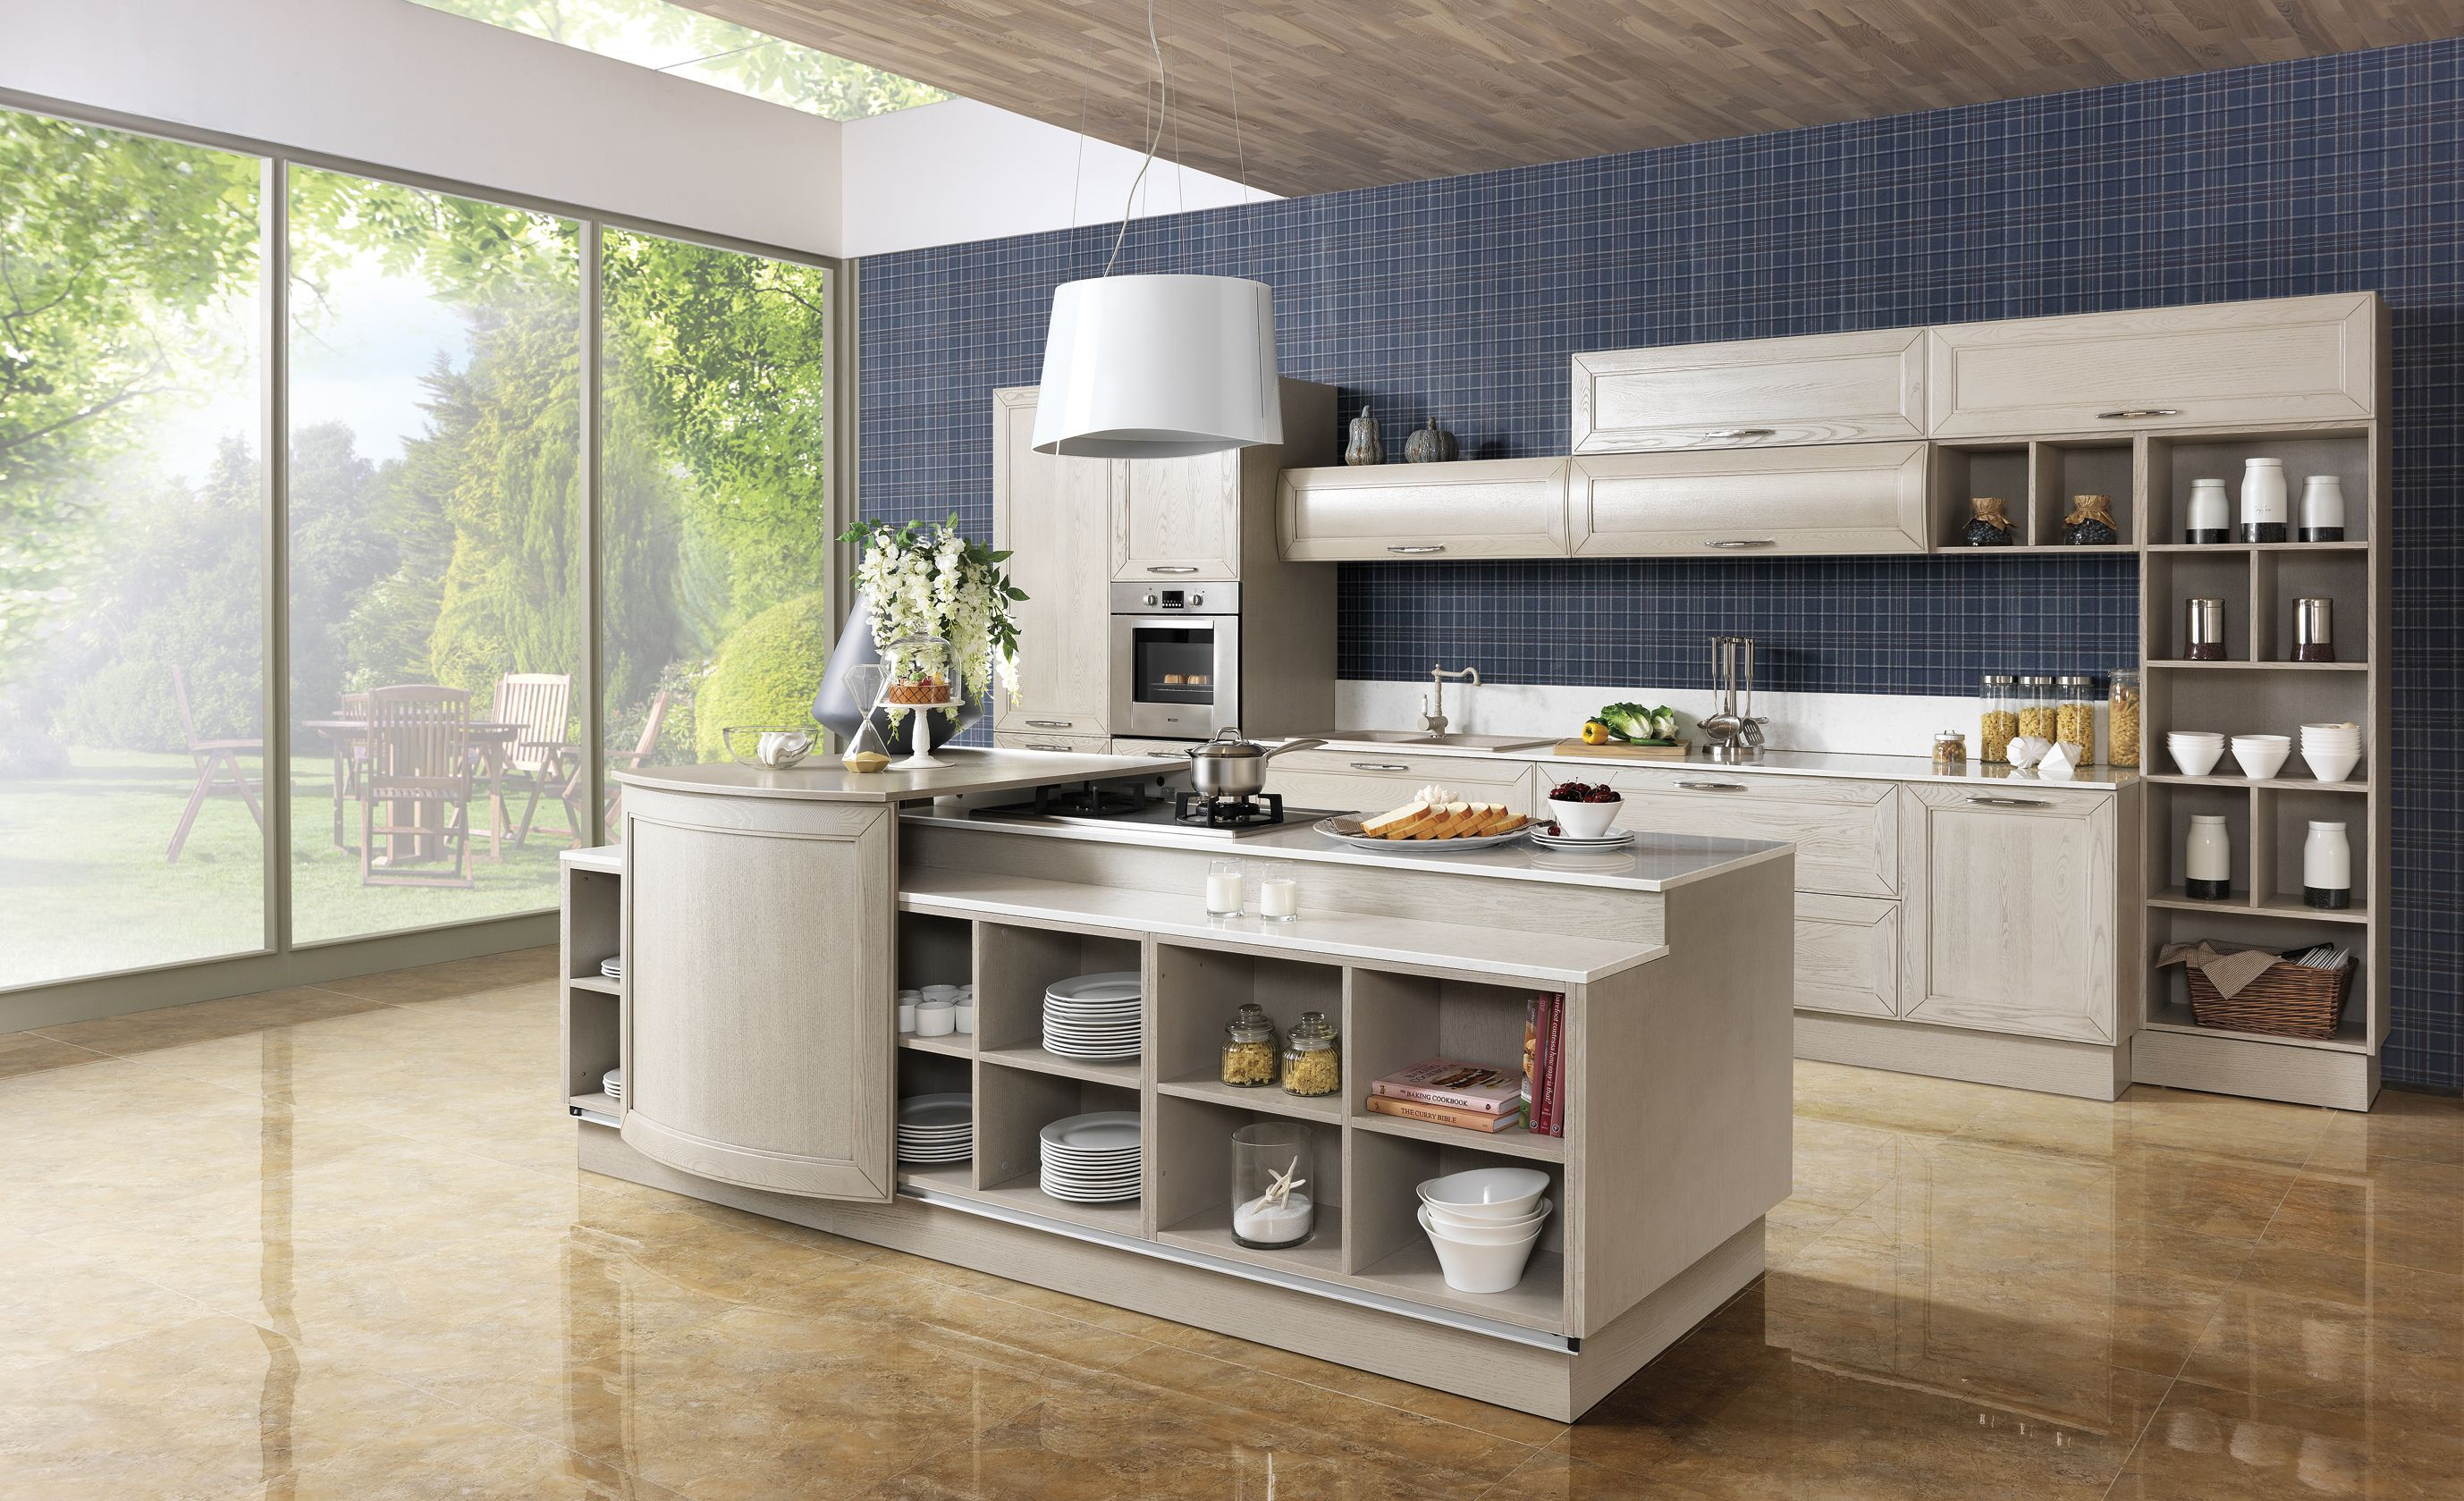 2014 Solid Wood Italy Kitchen Cabinet Luxury Series Oppein New